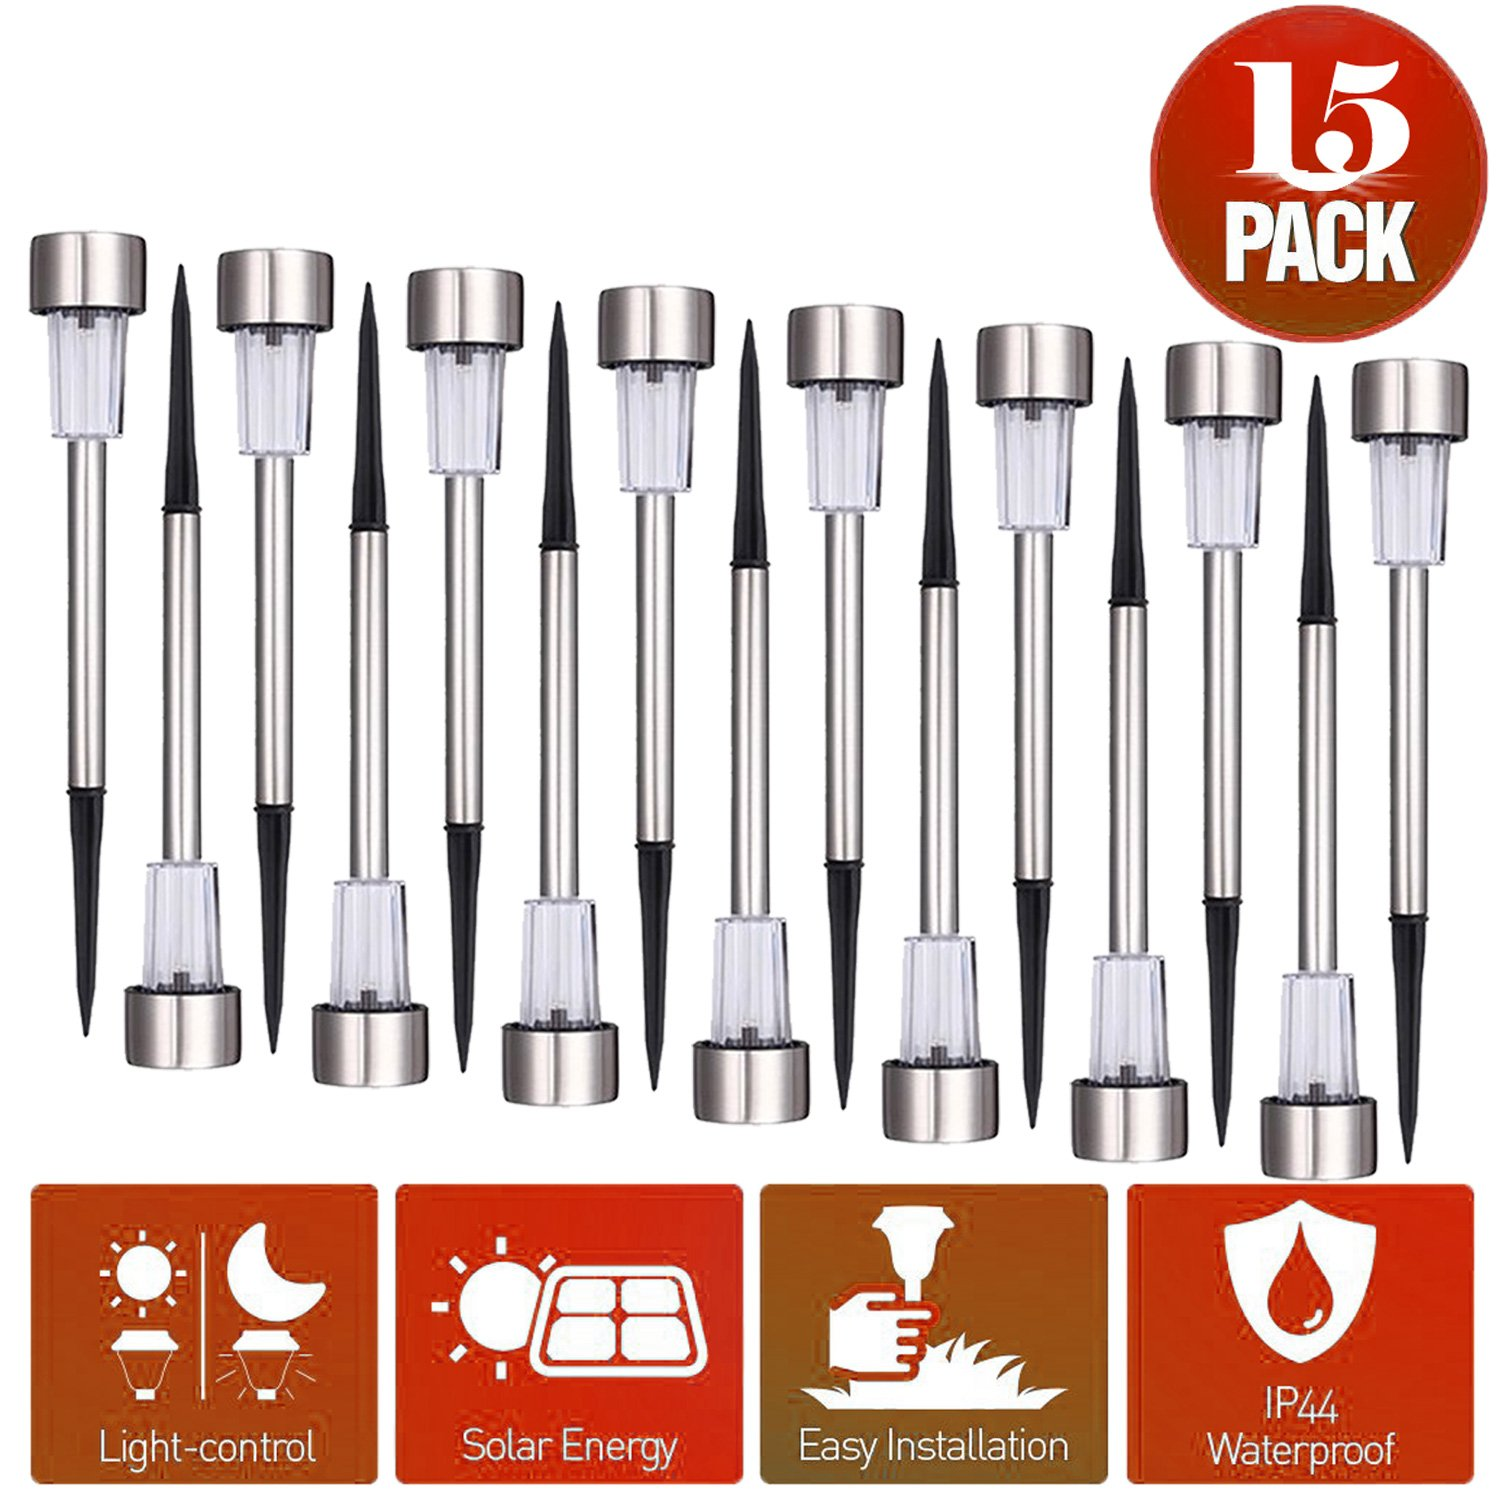 Solar Lights 15pack Light Garden Outdoor Lawn Landscape Lighting for Lawn/Patio/Yard/Walkway/Driveway by Trisens